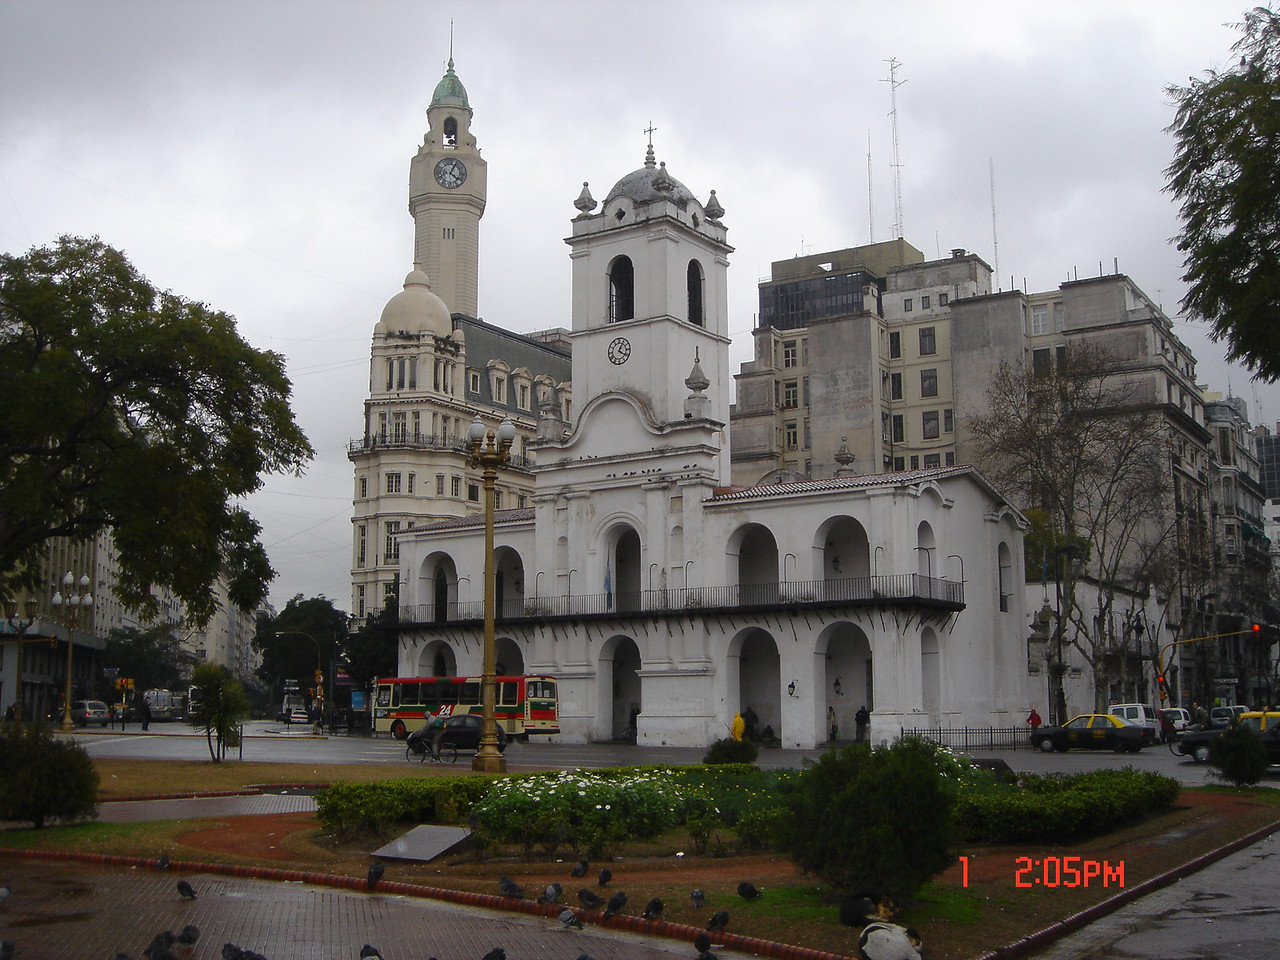 The historical white single clock tower Cabildo and the clock tower of the Legislature Building, Buenos Aires, Argentina